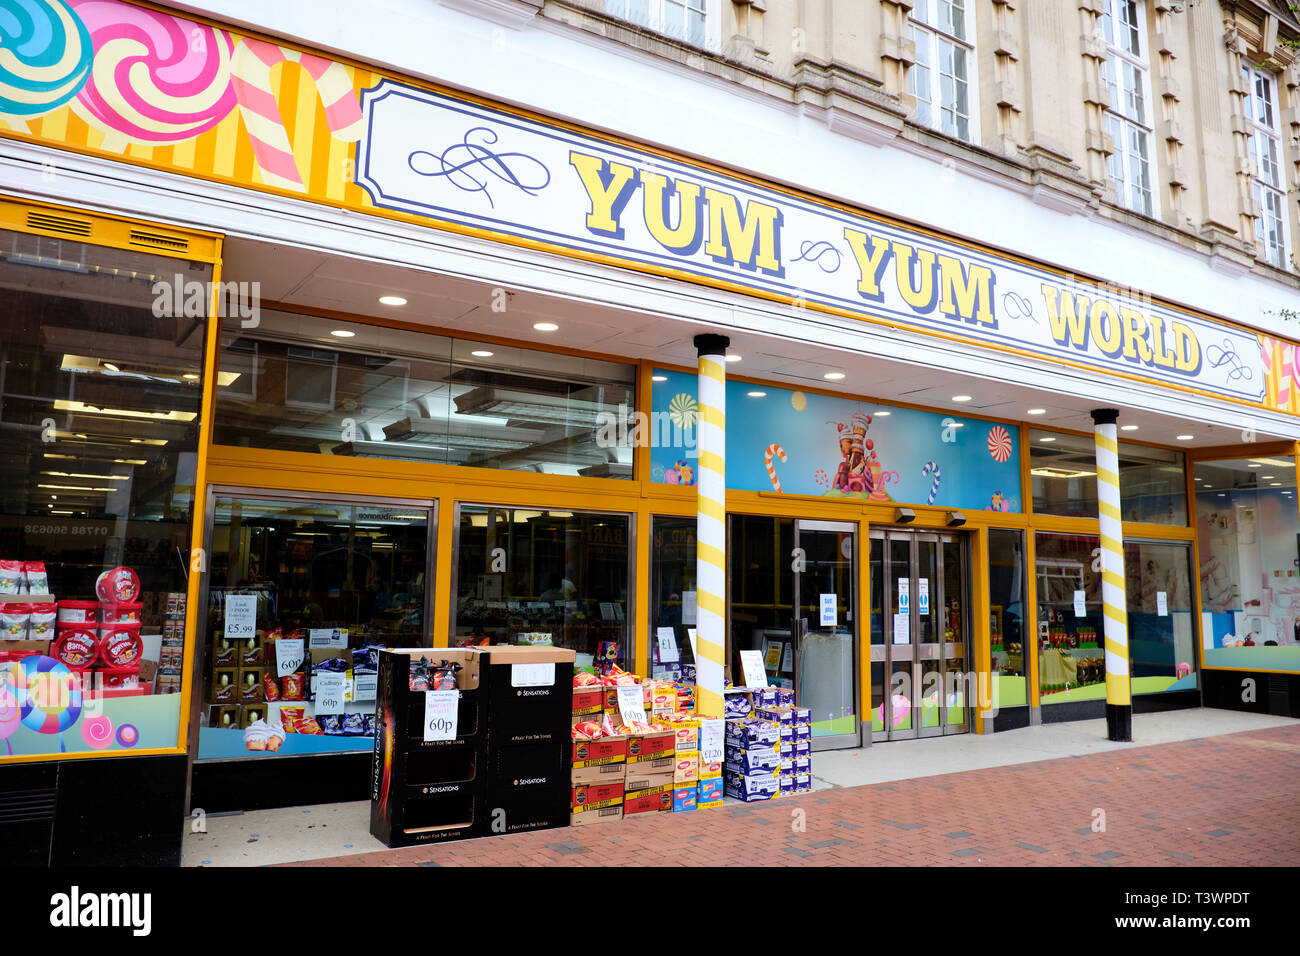 Facade Of Yum Yum World A Sweet Shop & Childrens Soft Play Area, High Street, Rugby, Warwickshire, UK - Stock Image